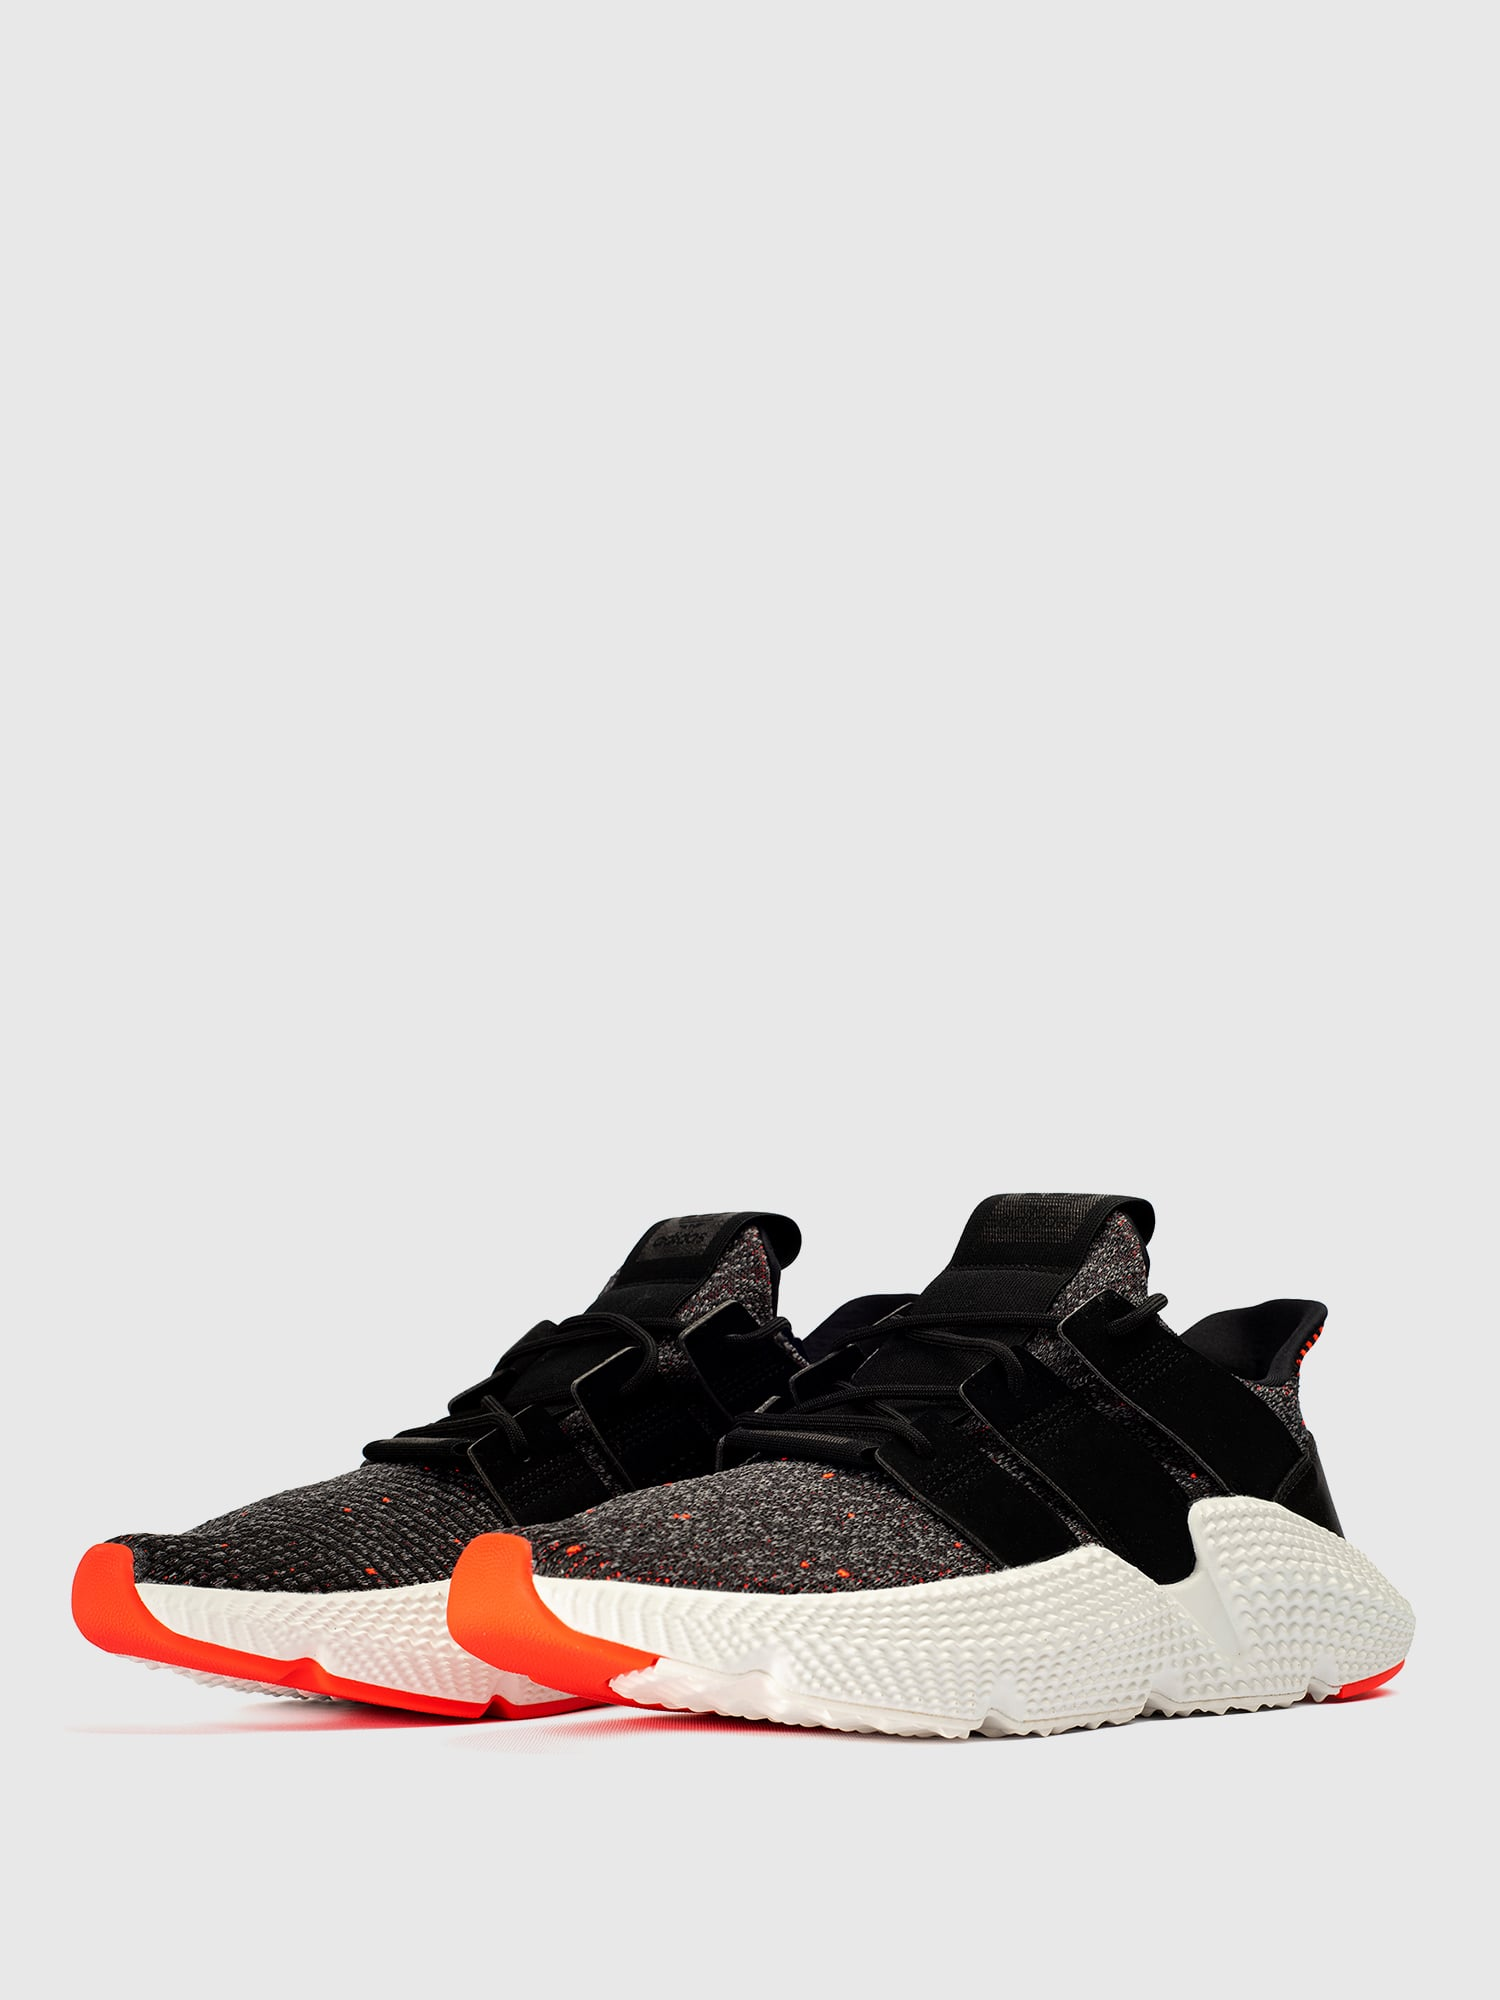 Adidas Prophere Core Black Solar Red